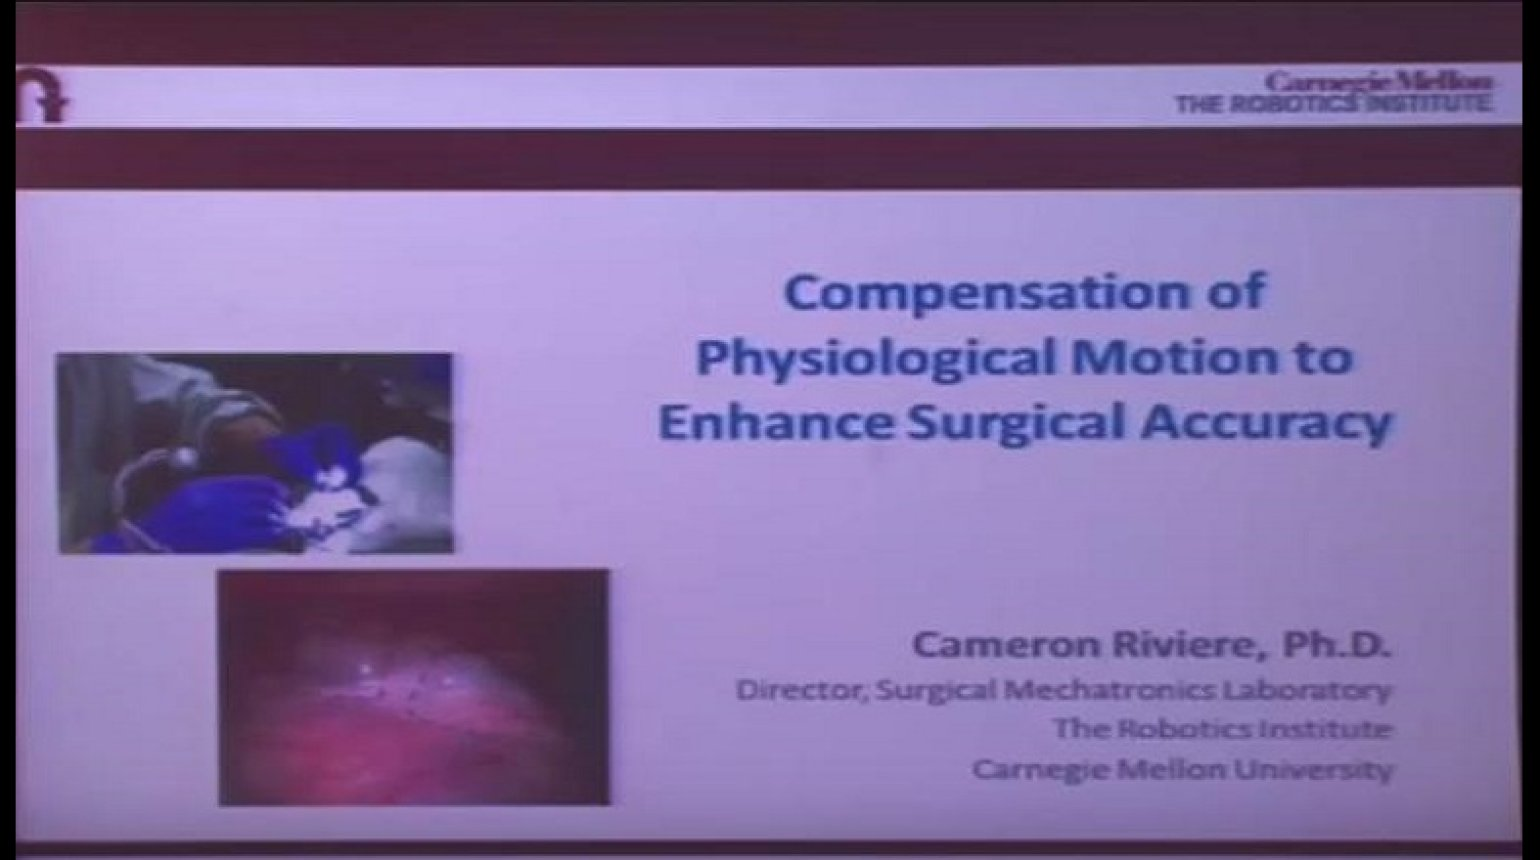 Compensation of phsyiological motion for enhanced surgical accuracy